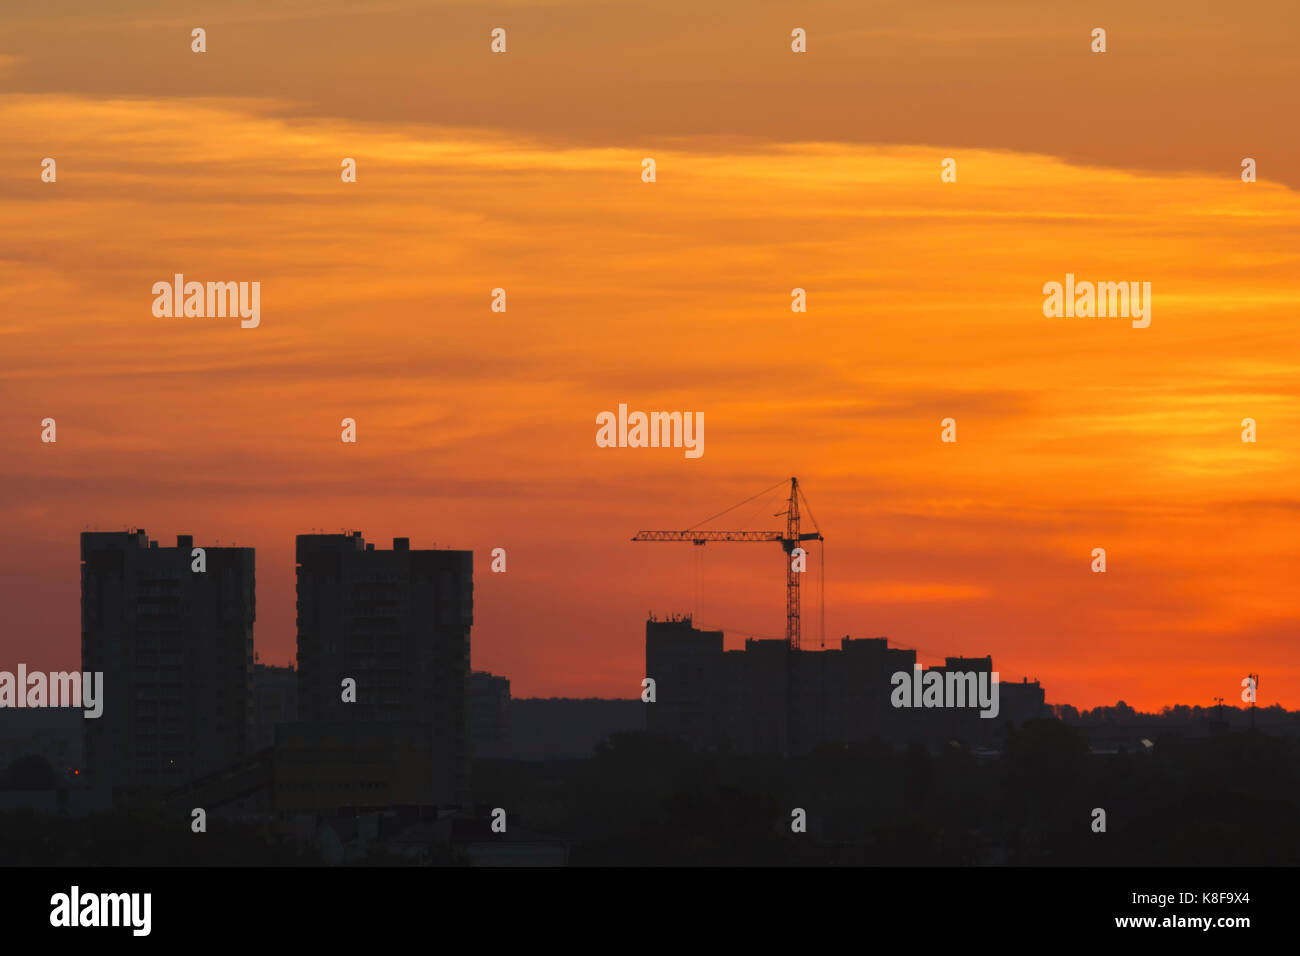 Construction cranes near residential apartments - view on sunrise, horizontal - Stock Image